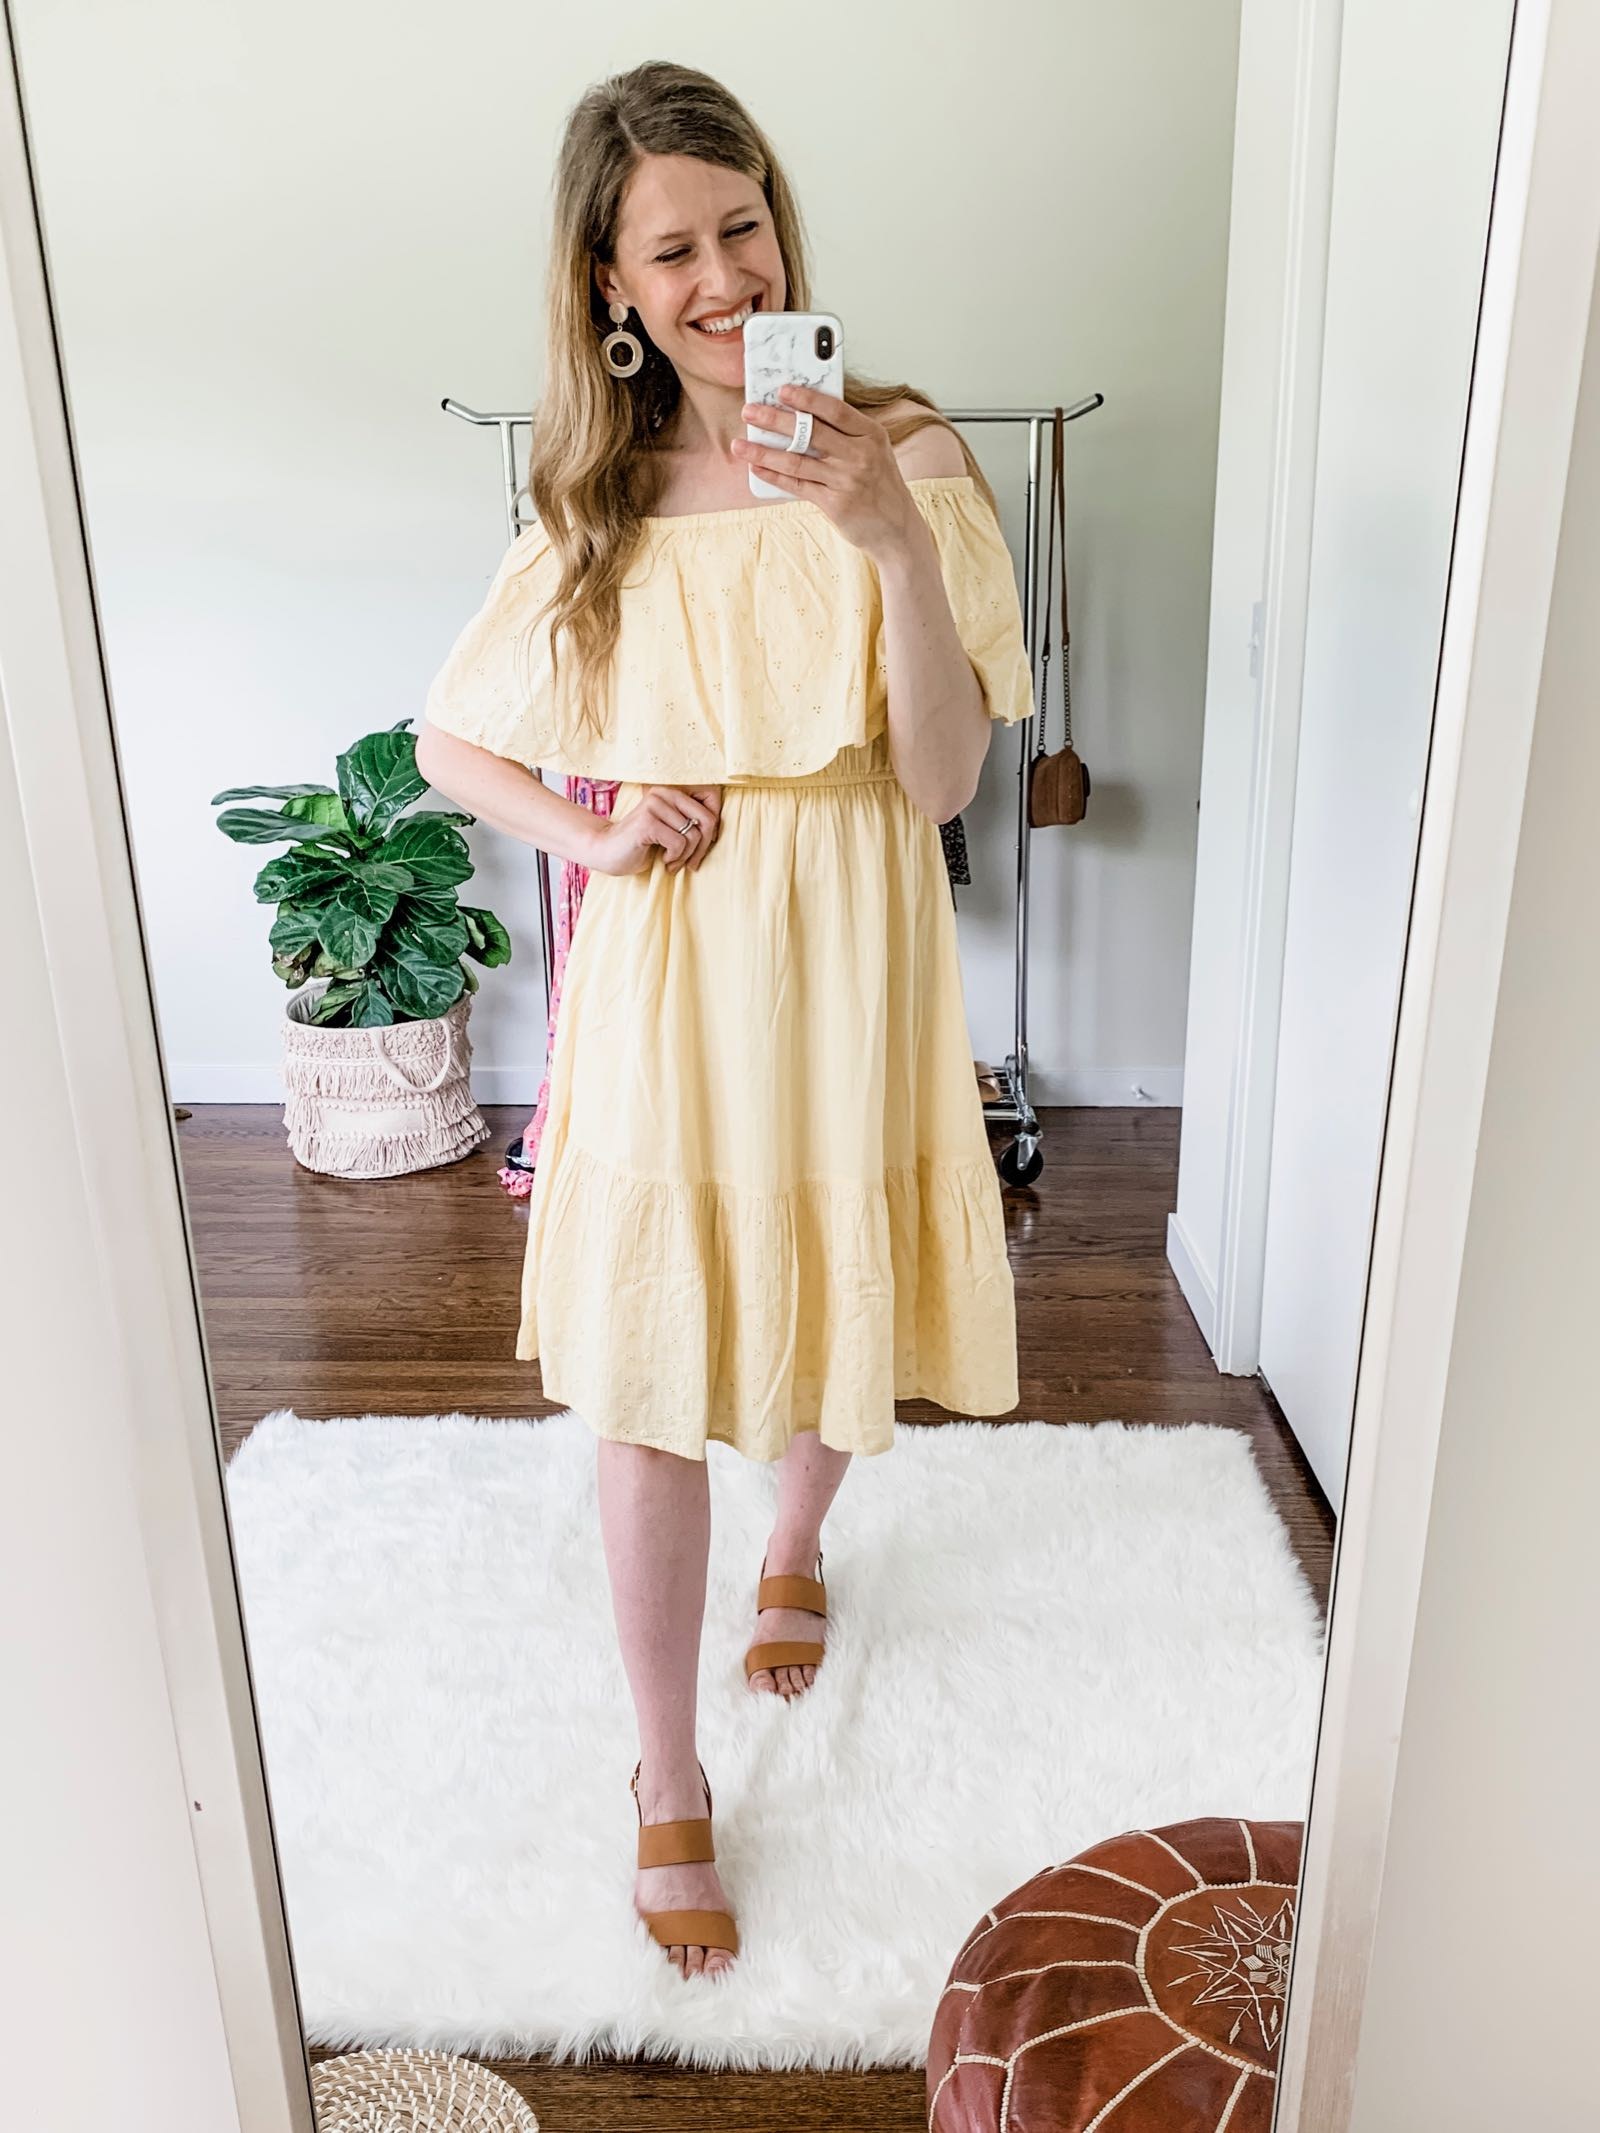 Summer dresses from the Sofia Vergara collection at Walmart - under $40!